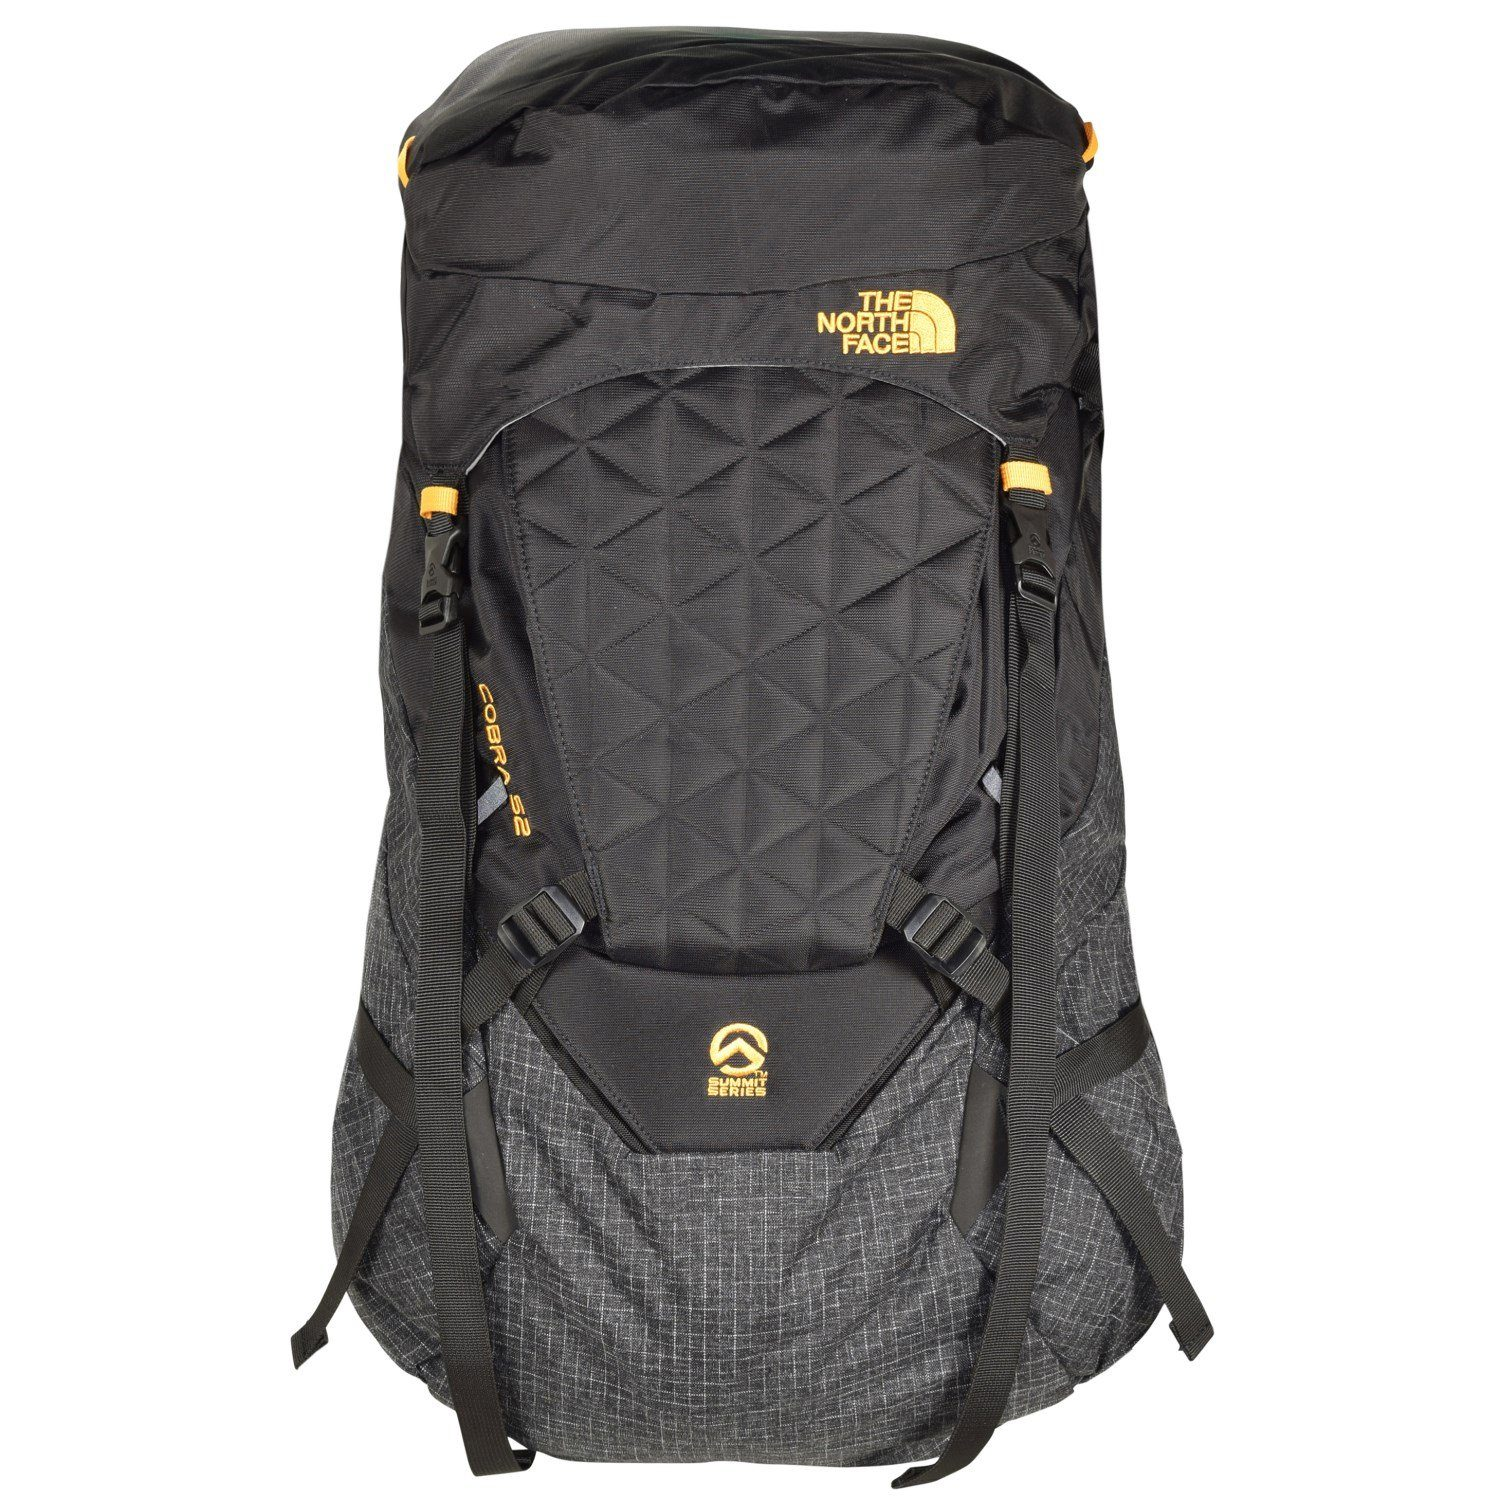 The North Face Outdoor Cobra 52 LXL Rucksack 56 cm